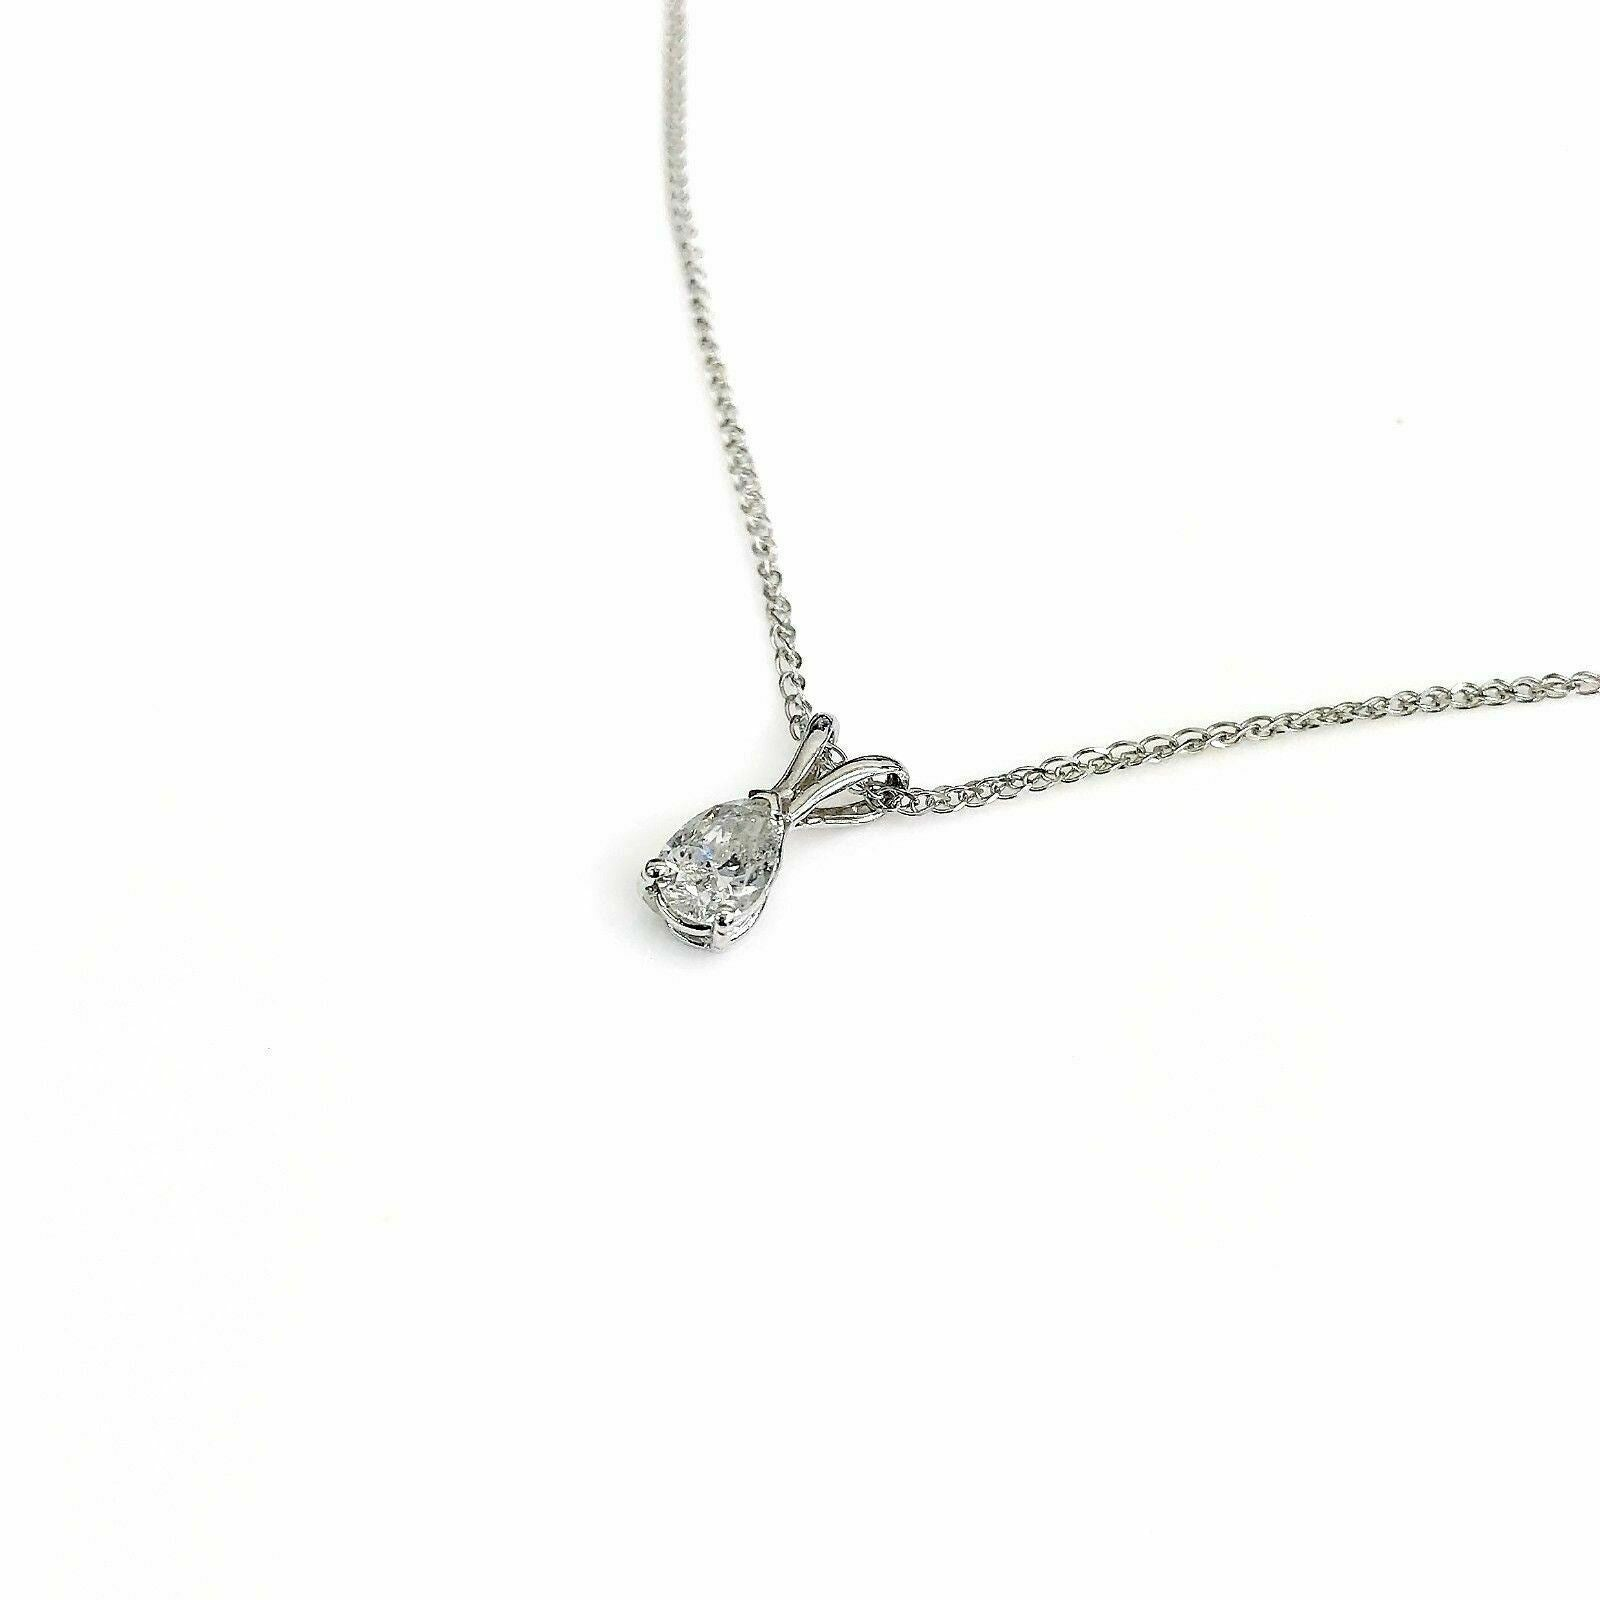 0.48 Carat Pear Diamond Solitaire Pendant with 14K White Gold Chain